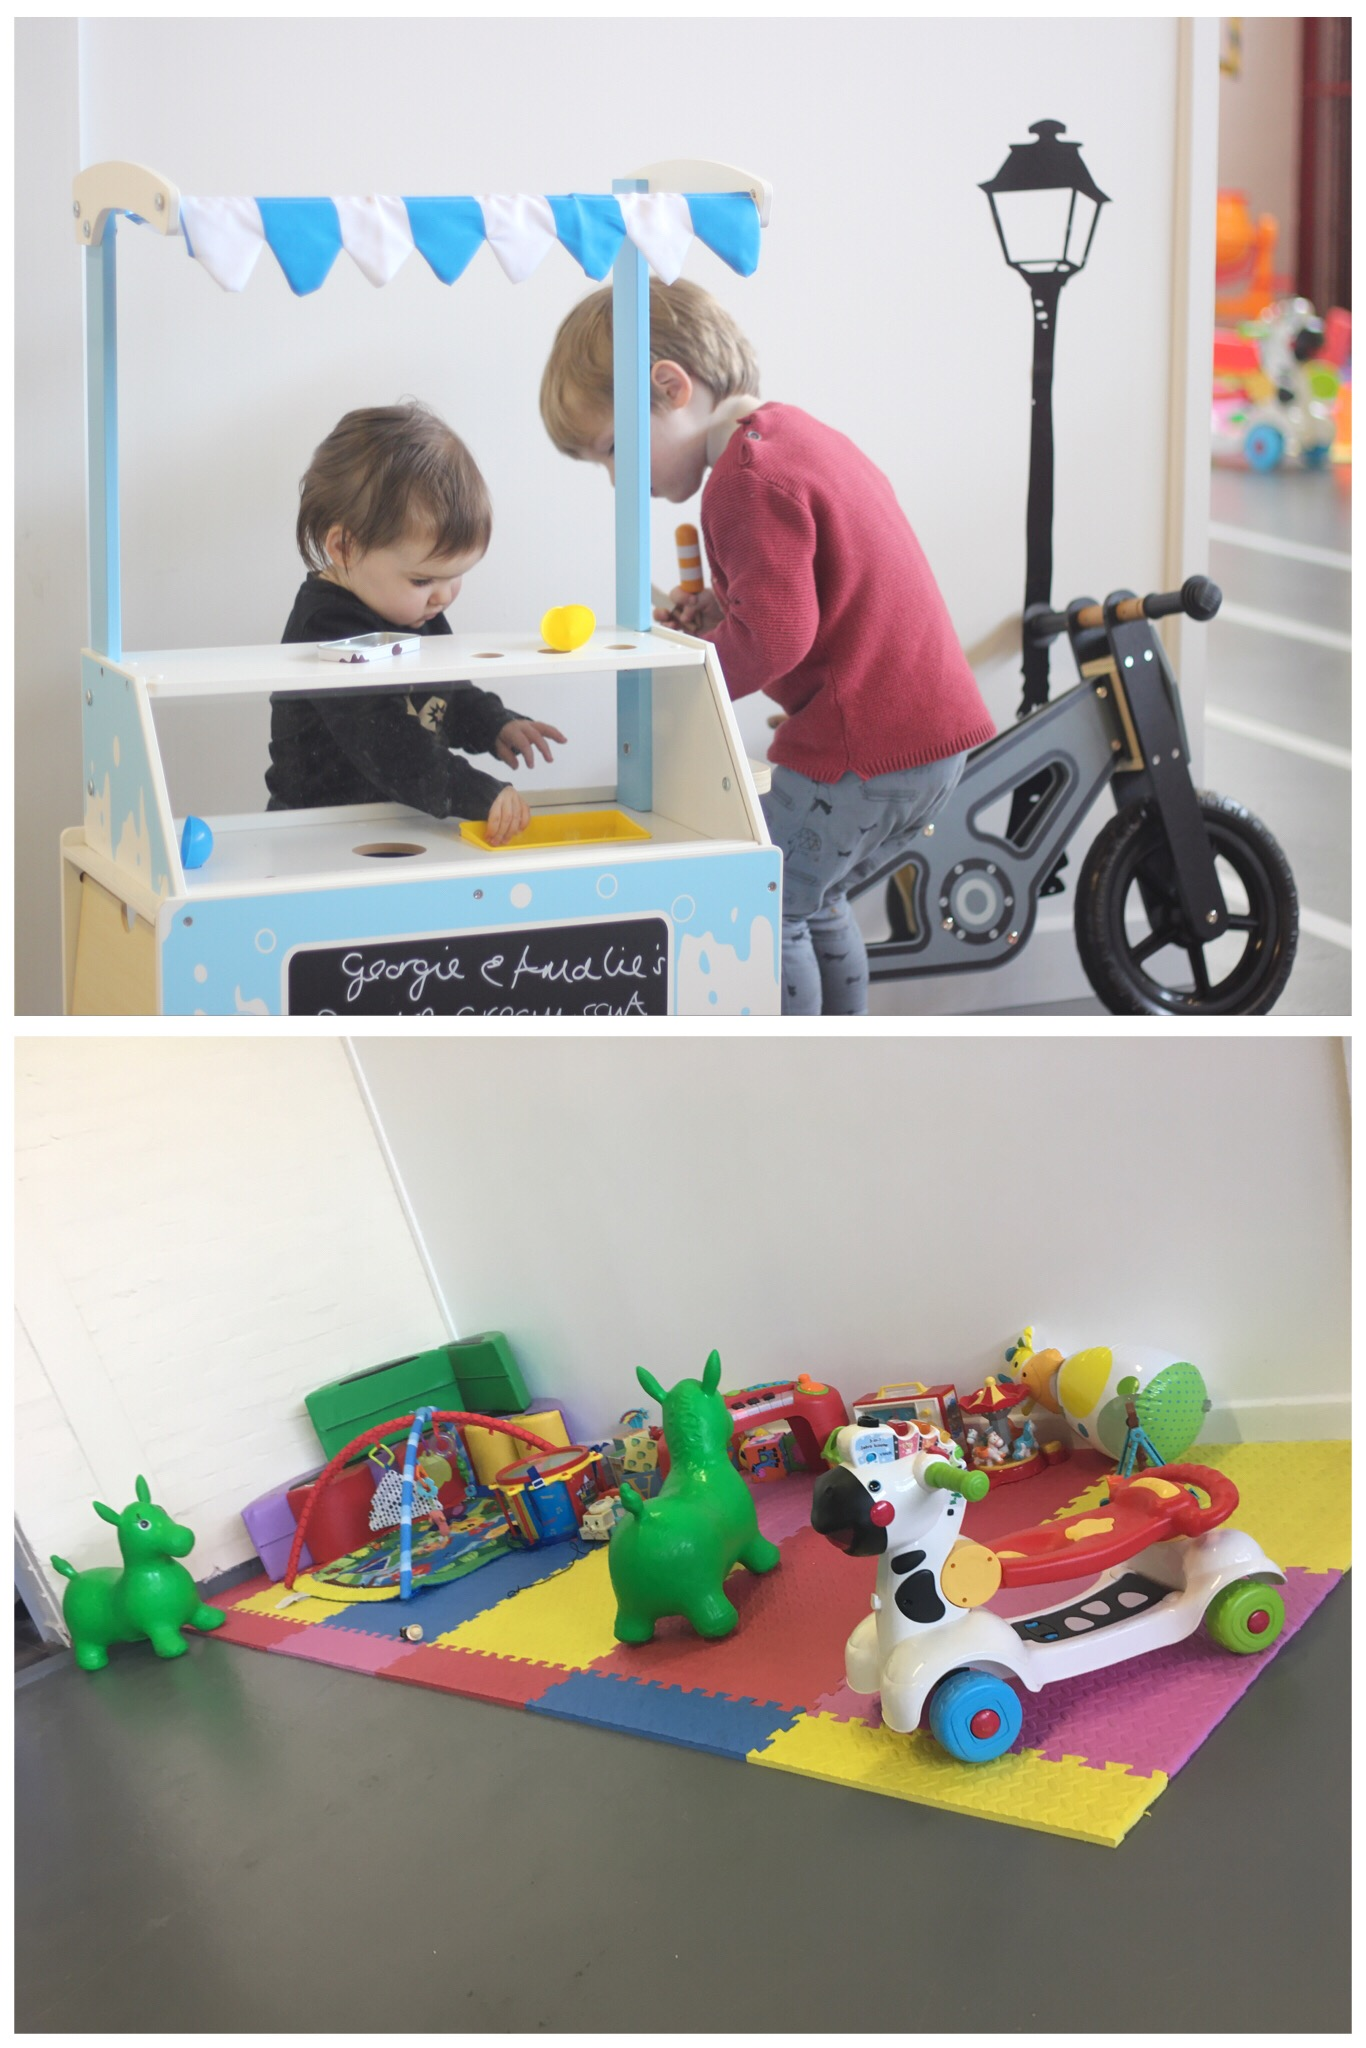 Lets Play Big Children's Role Play Washington Ice Cream Station and Baby Play Area